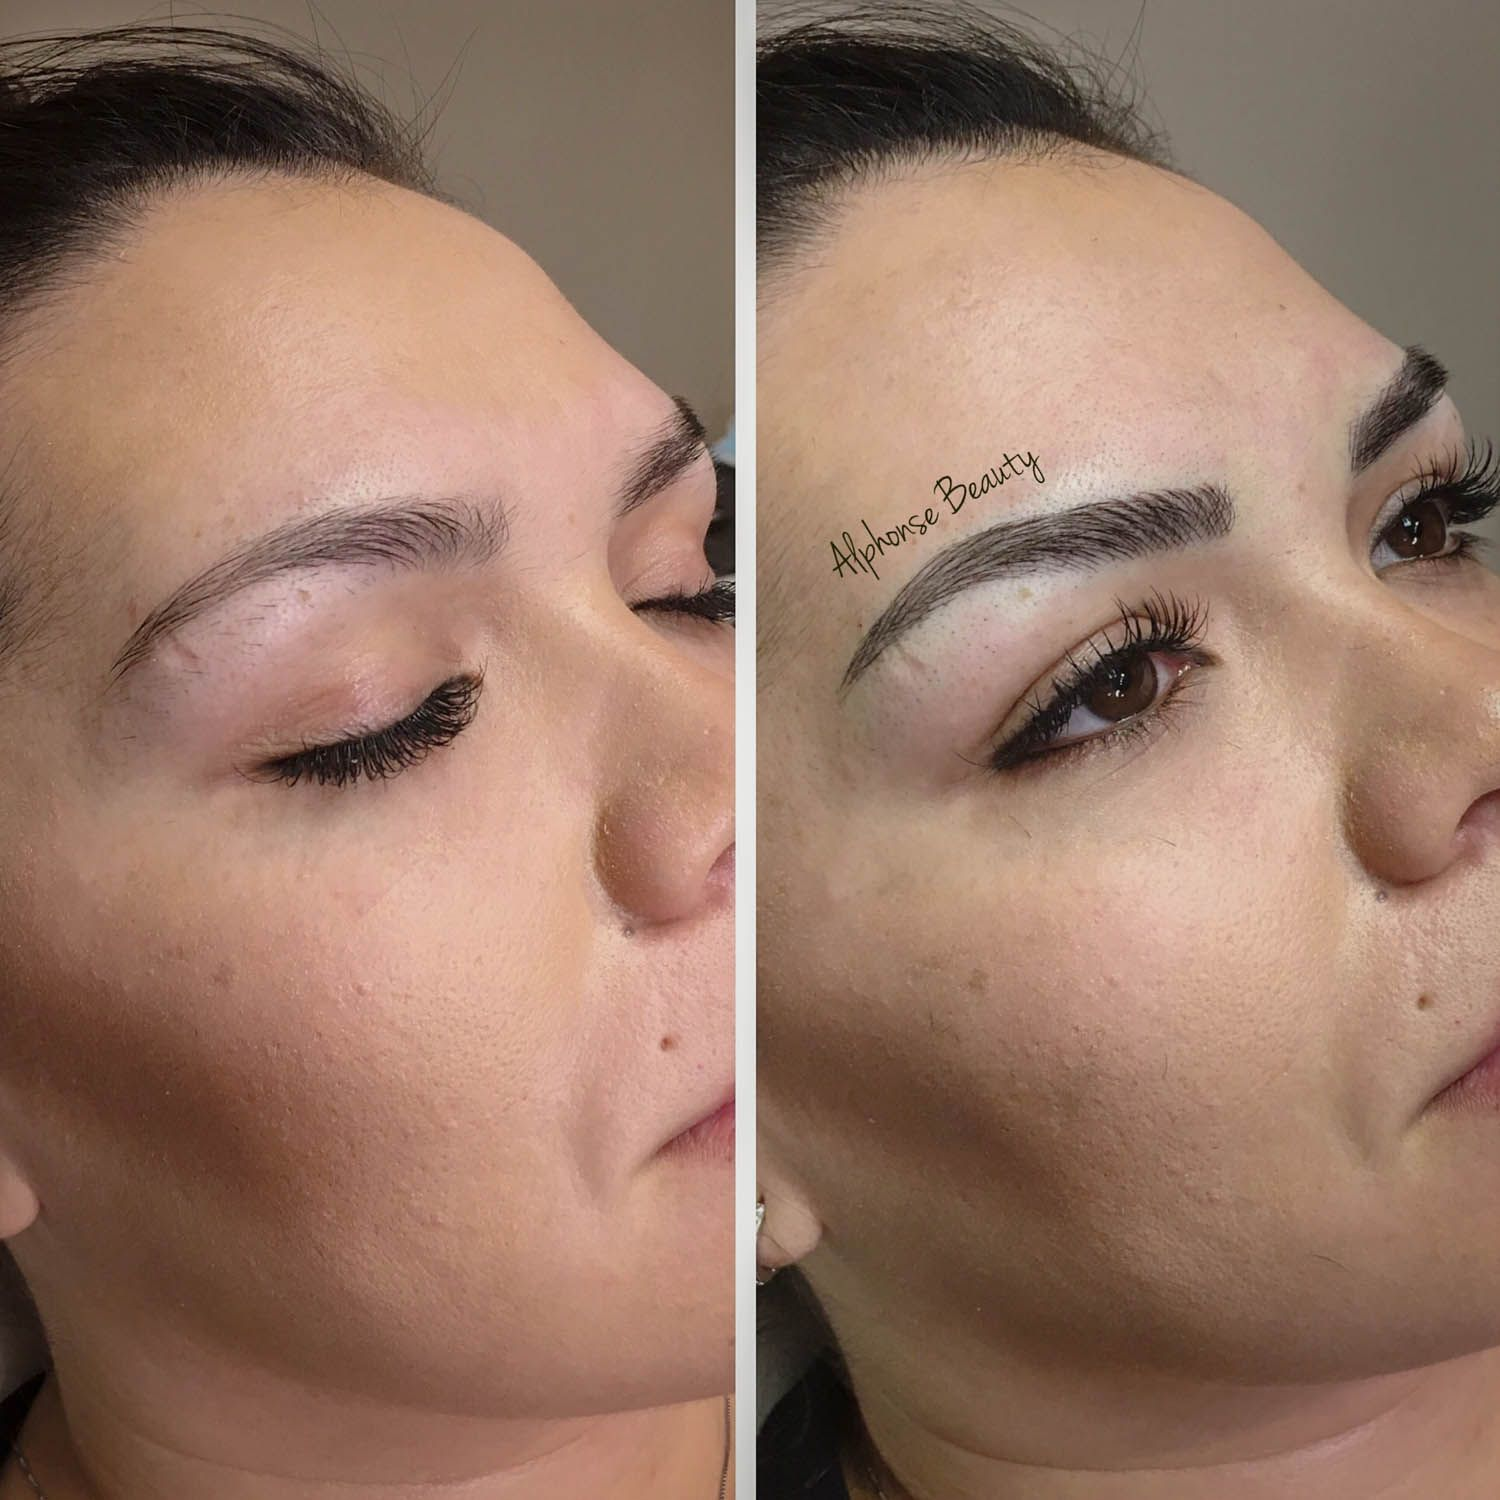 Eyebrow Permanent Makeup Before & After Michigan